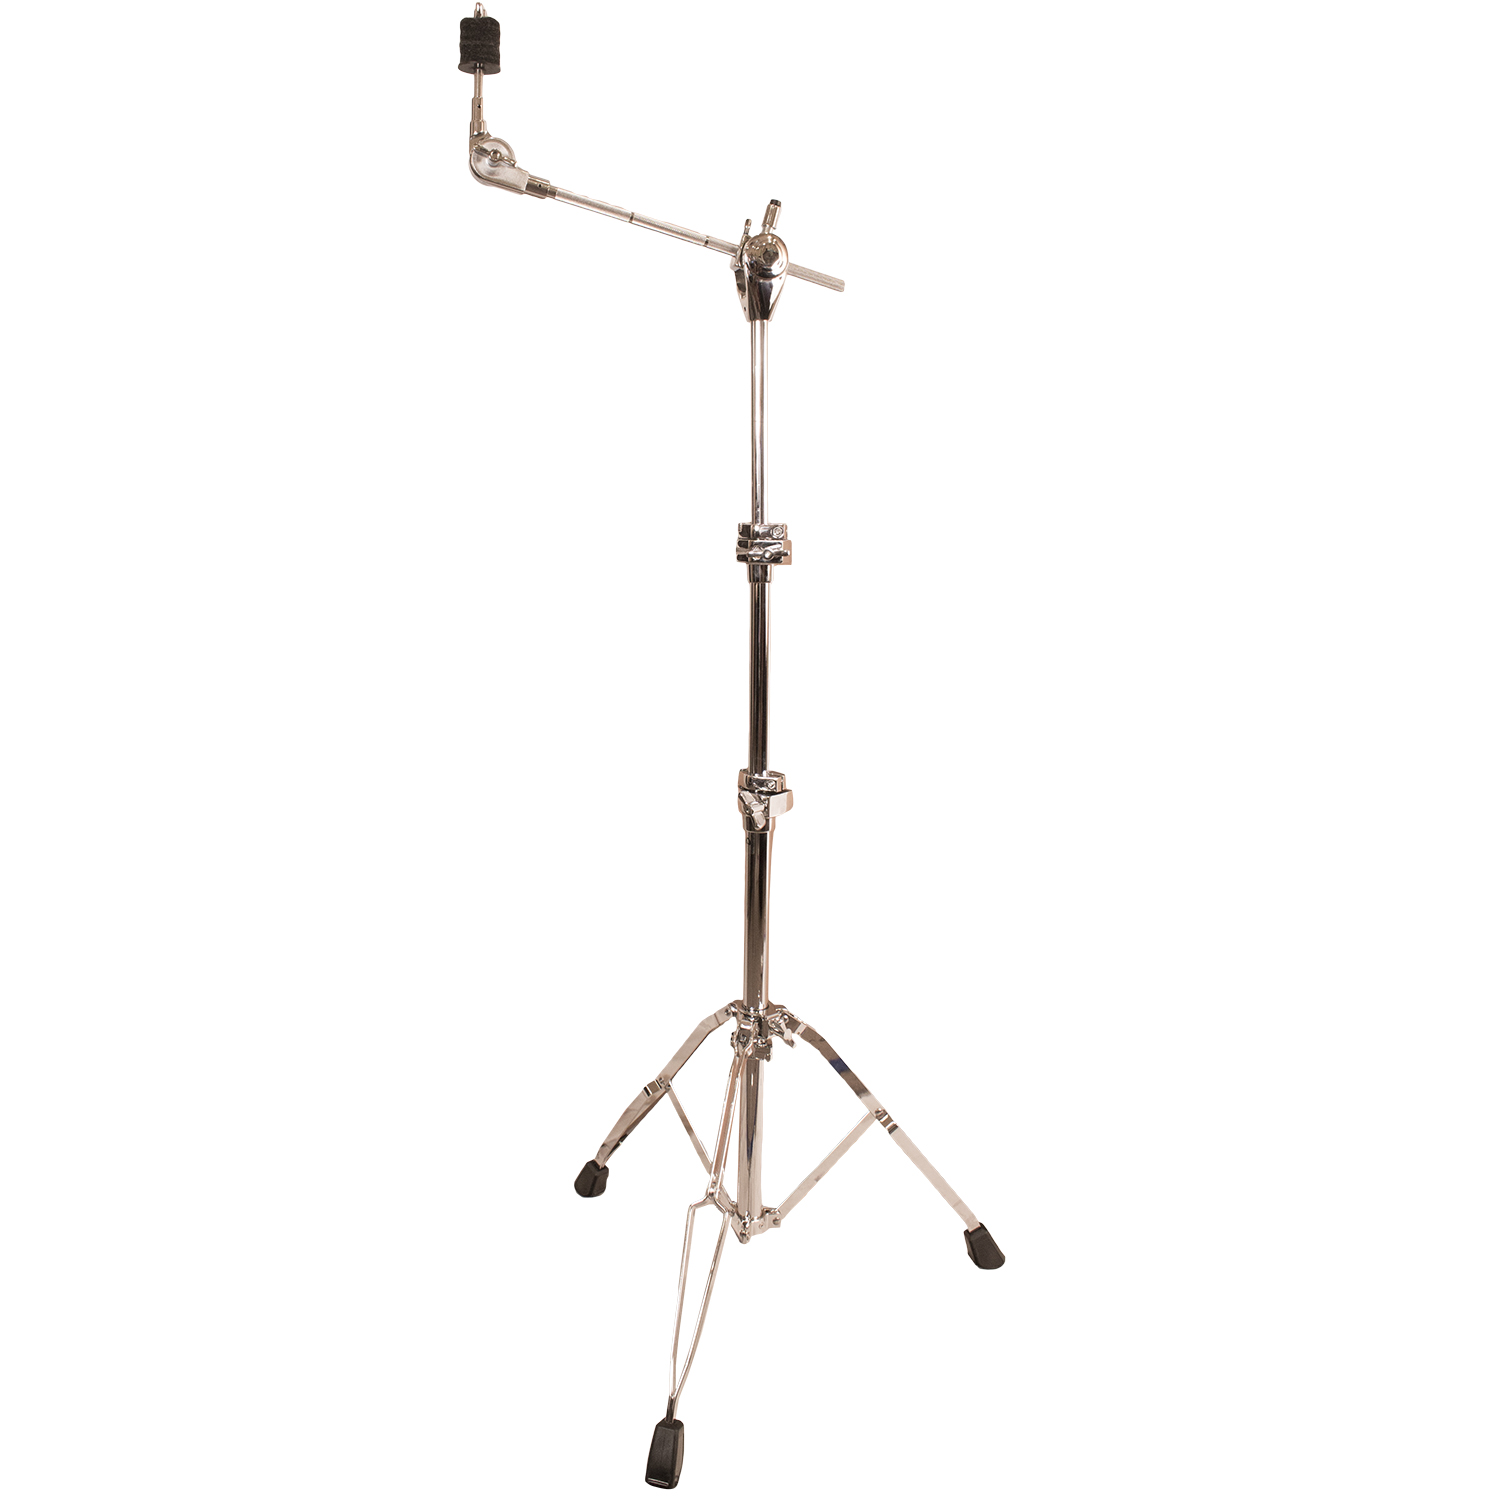 Pro Series Cymbal Boom Stand